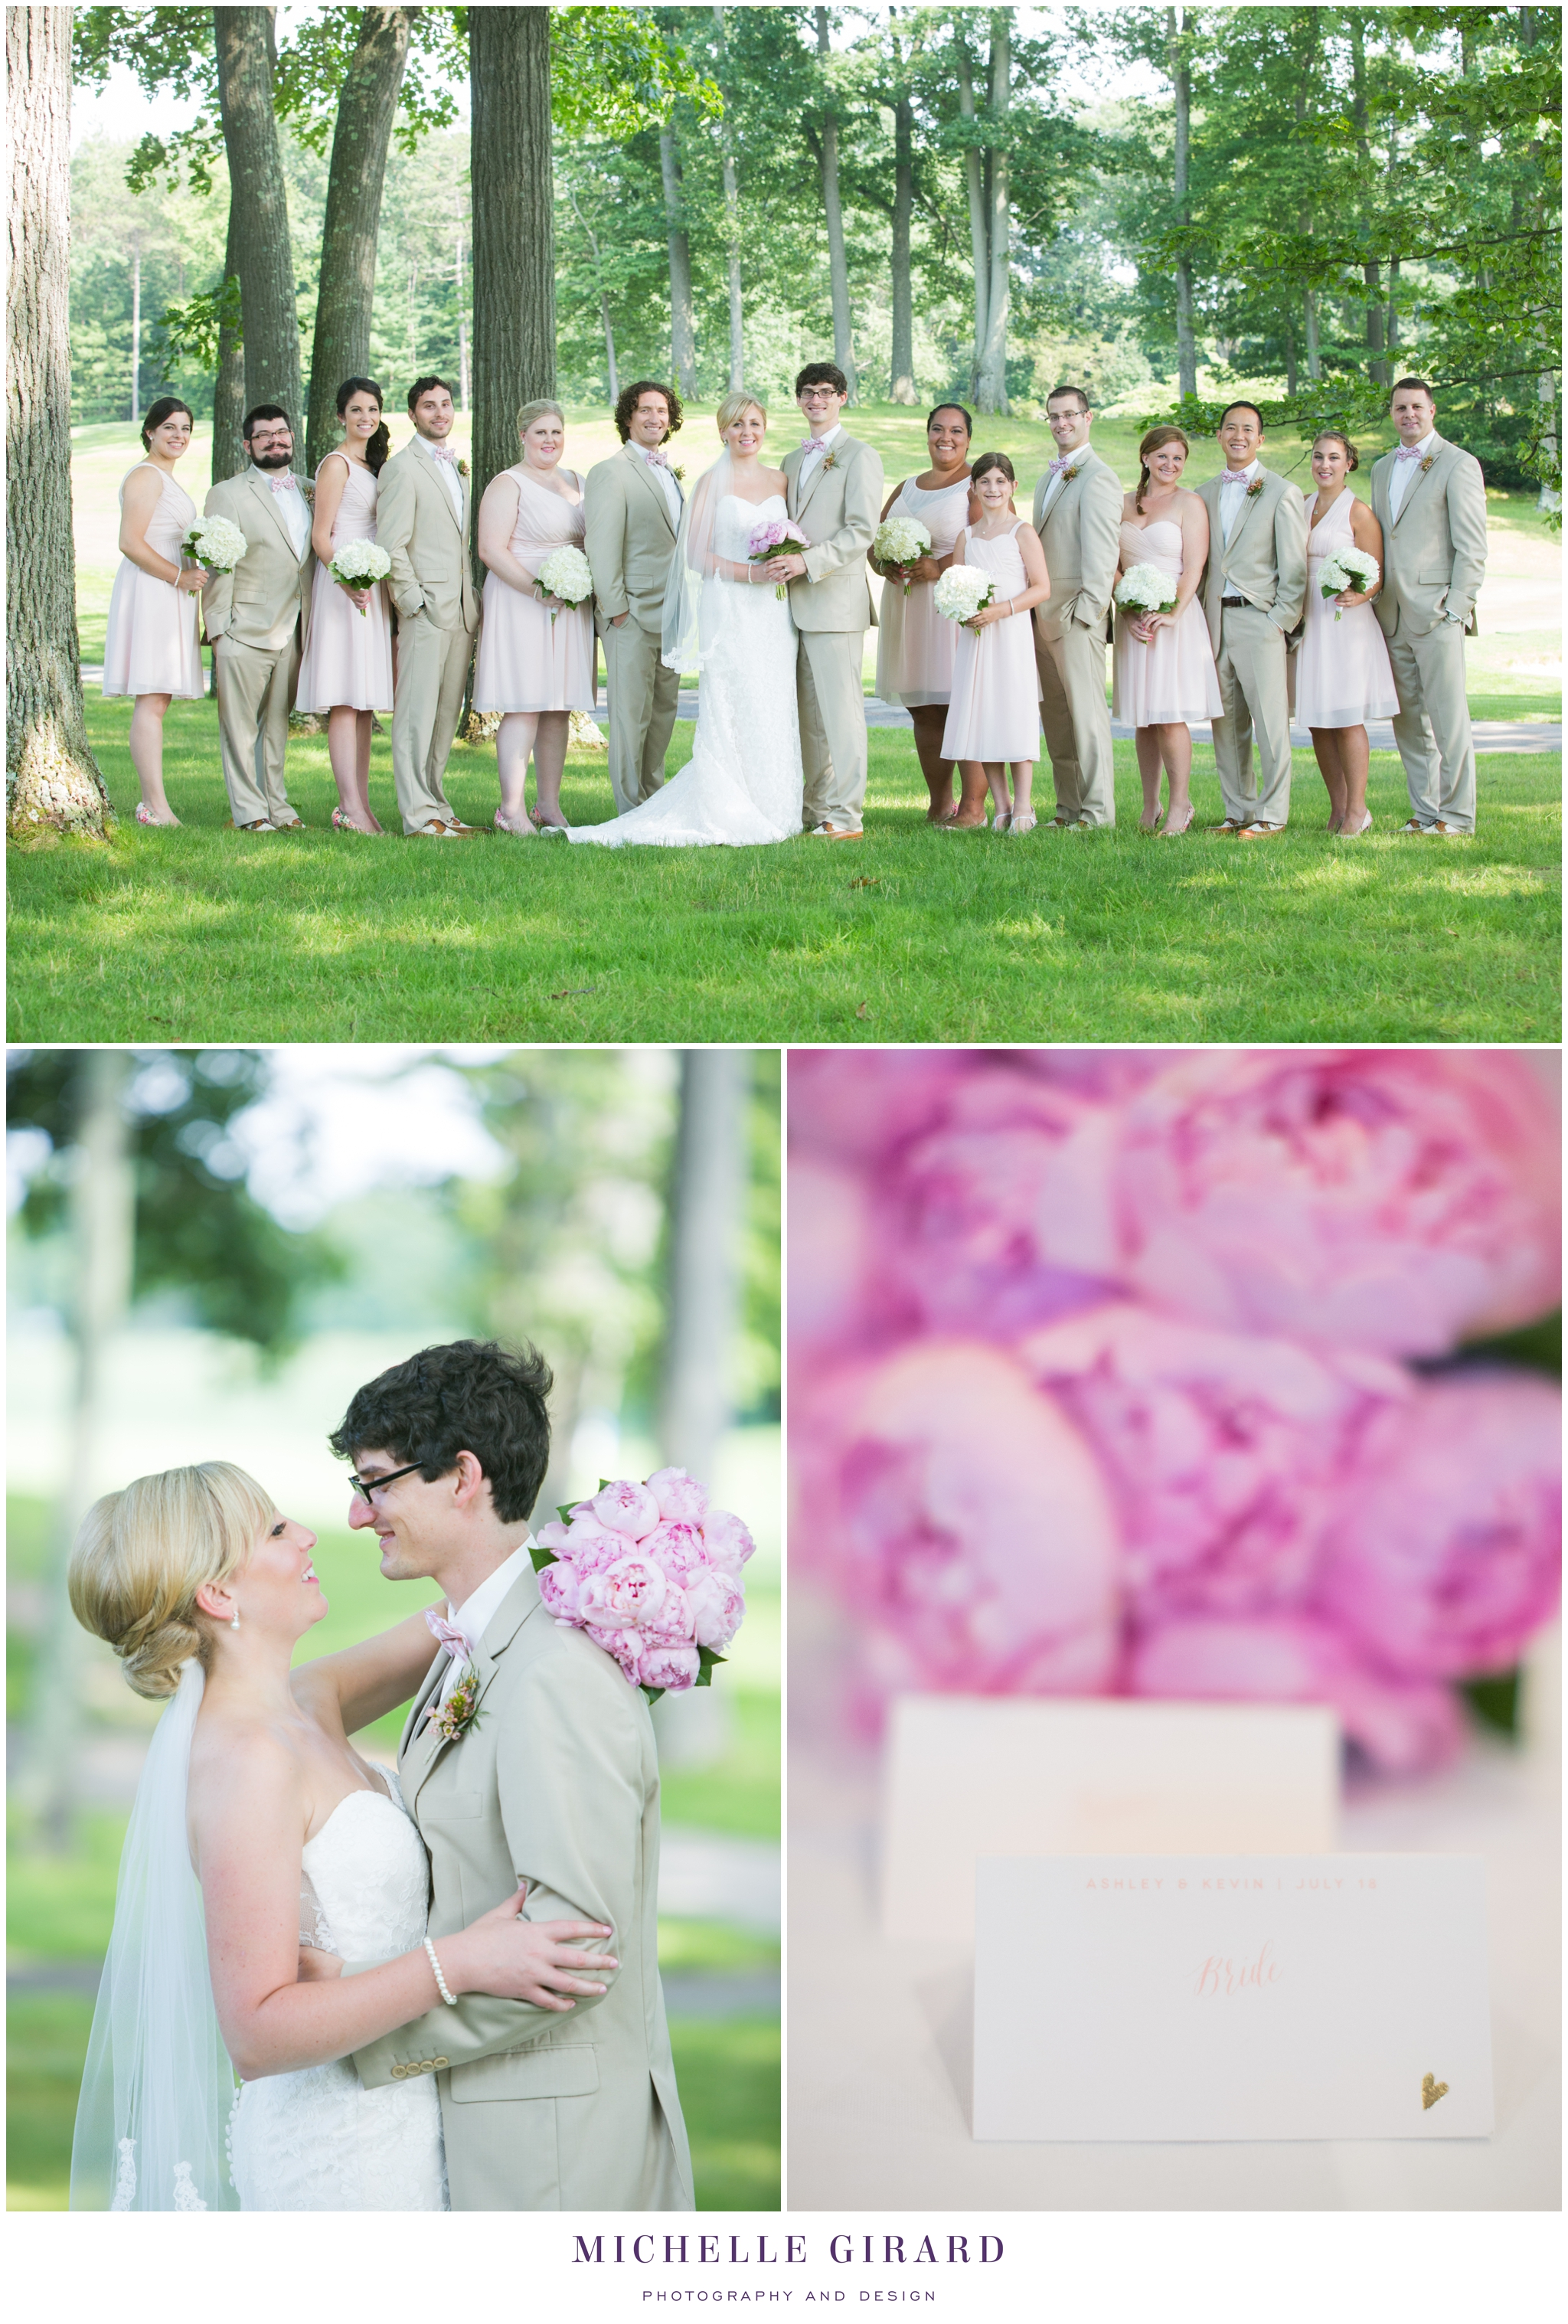 FarmsCountryClub_SummerWedding_MichelleGirardPhotography08.jpg